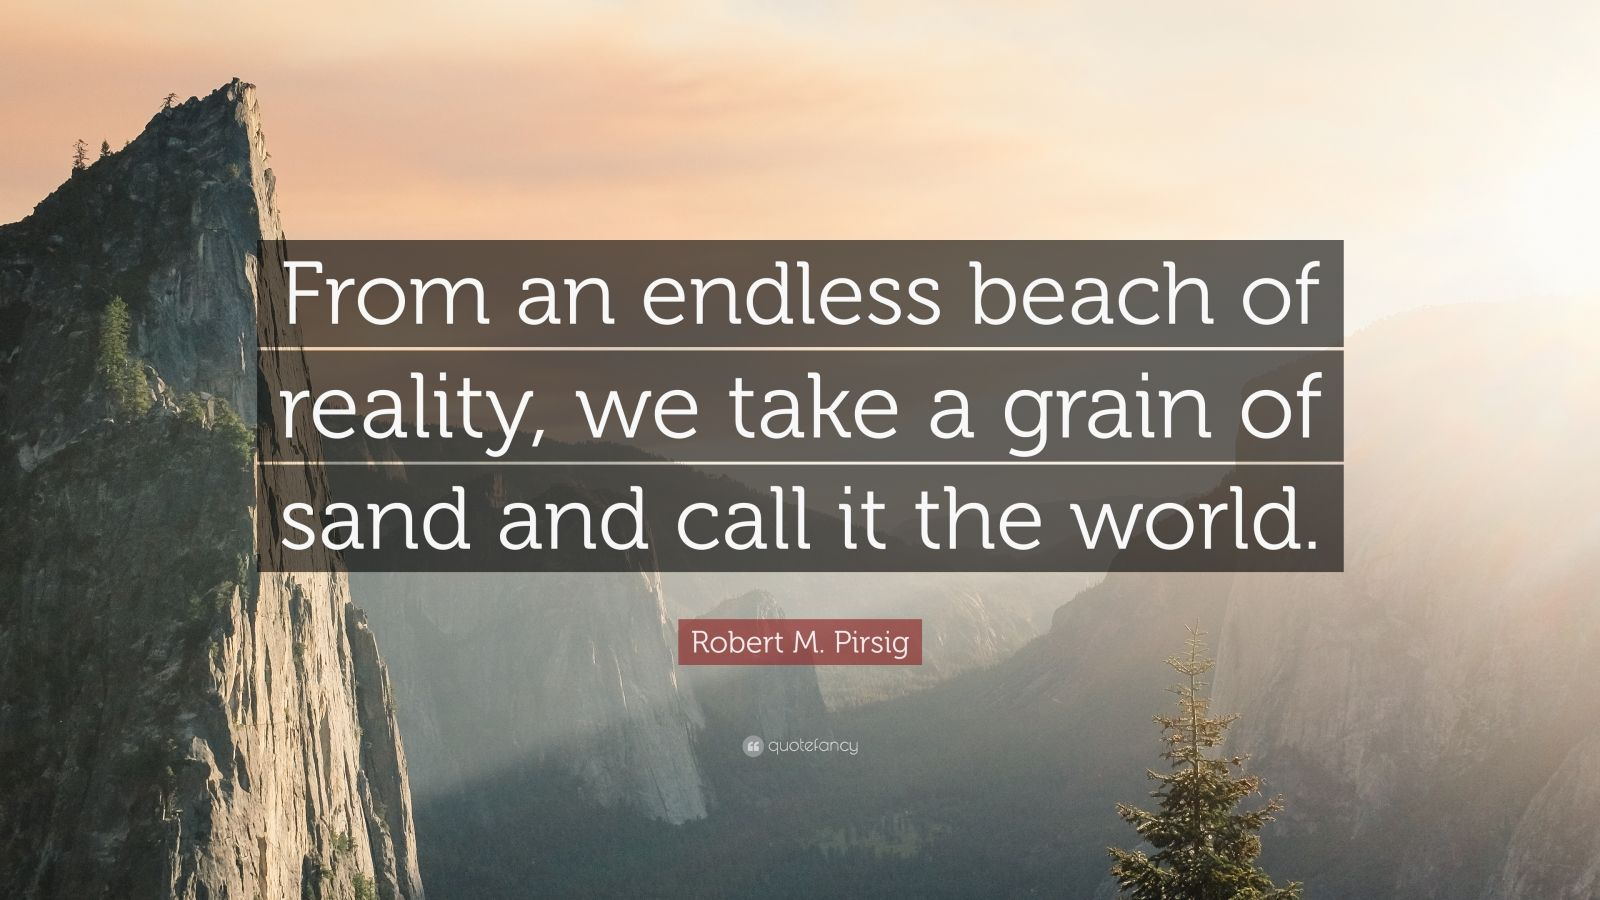 """Robert M. Pirsig Quote: """"From an endless beach of reality, we take a grain of sand and call it the world."""""""